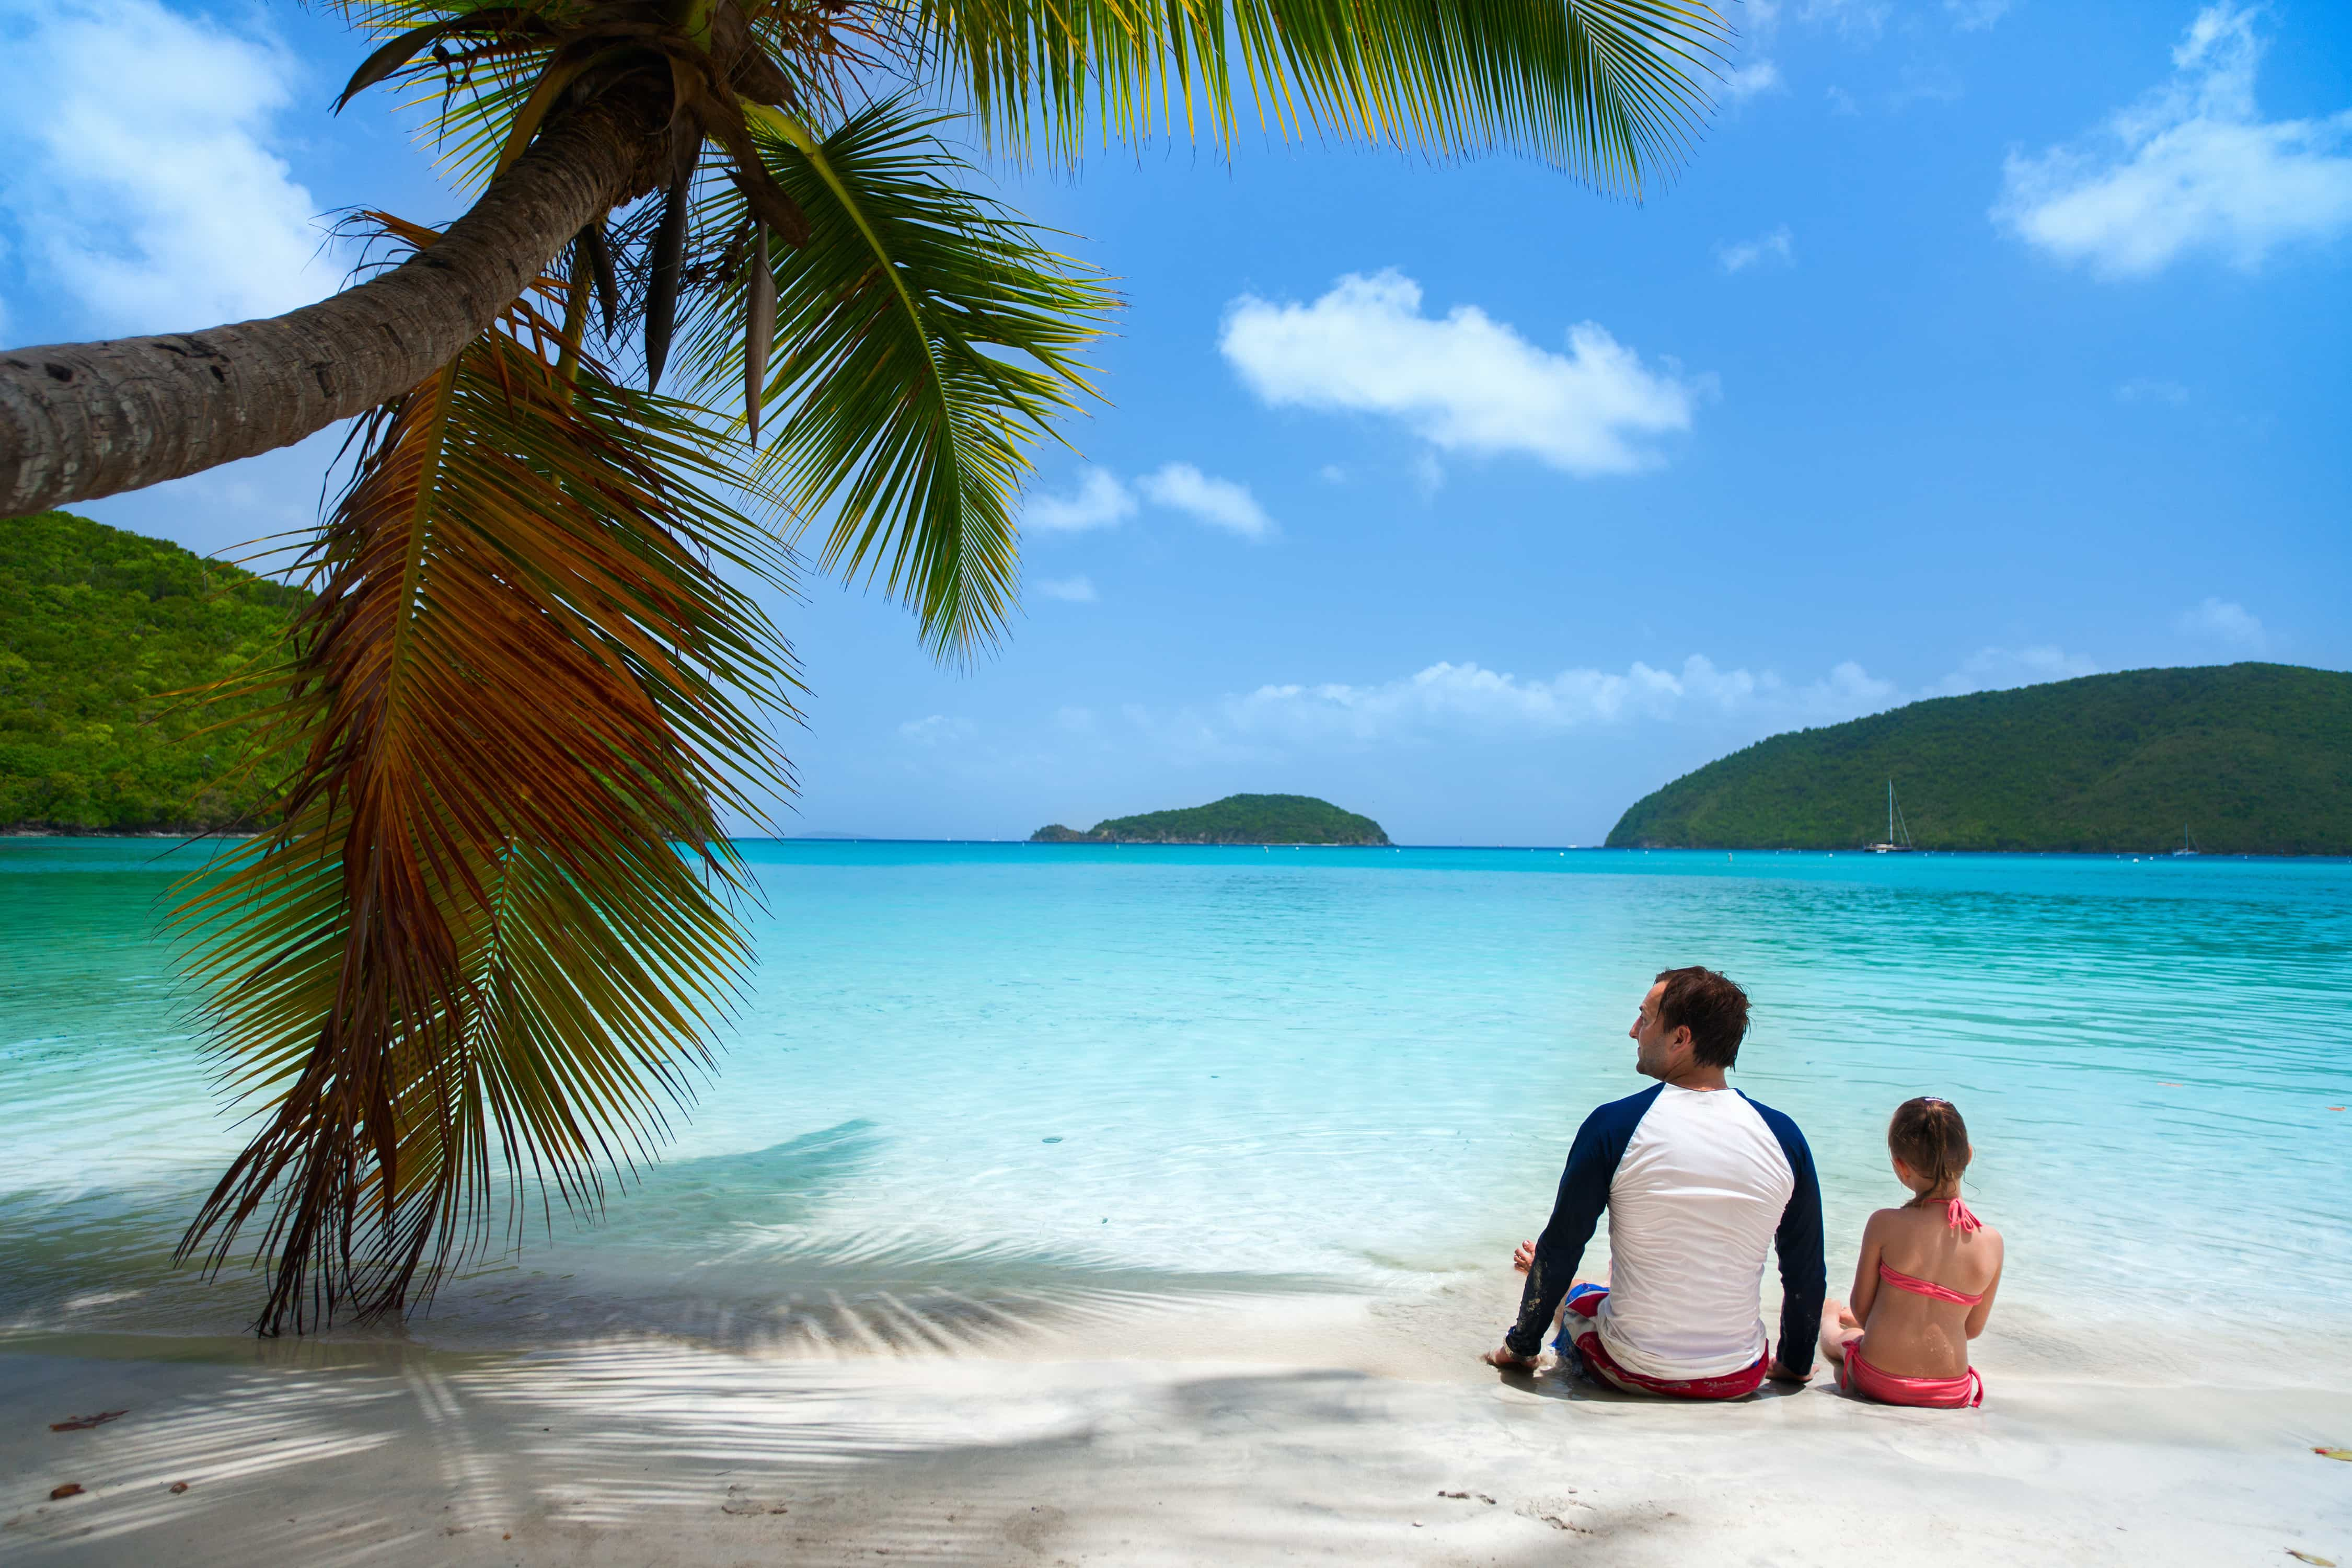 white father and daughter on a white sand beach with palm tree overhanging and turquoise waters in front